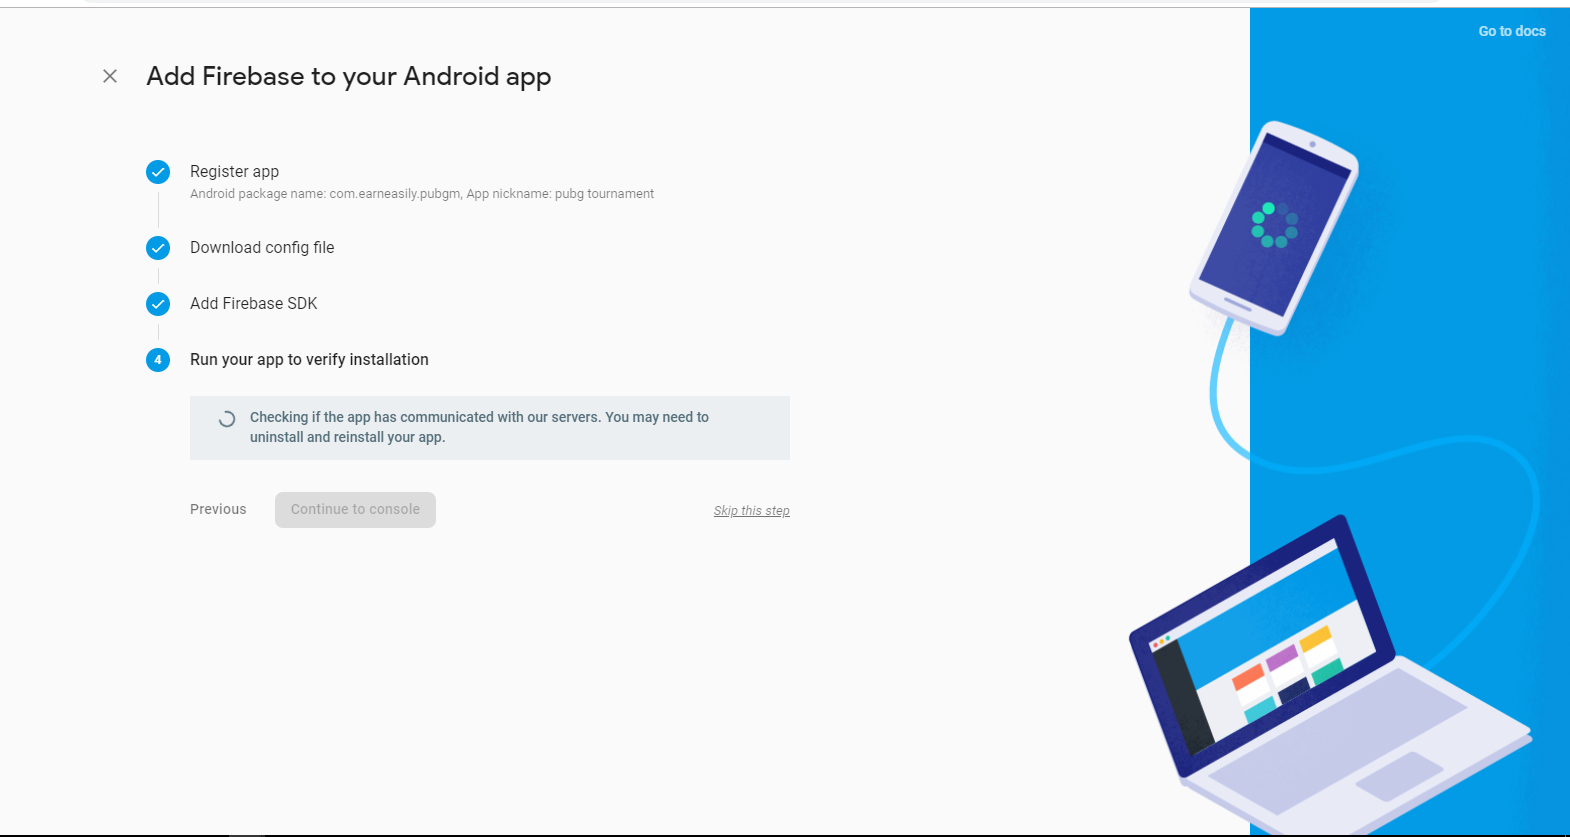 How to verify your app to add firebase into your app